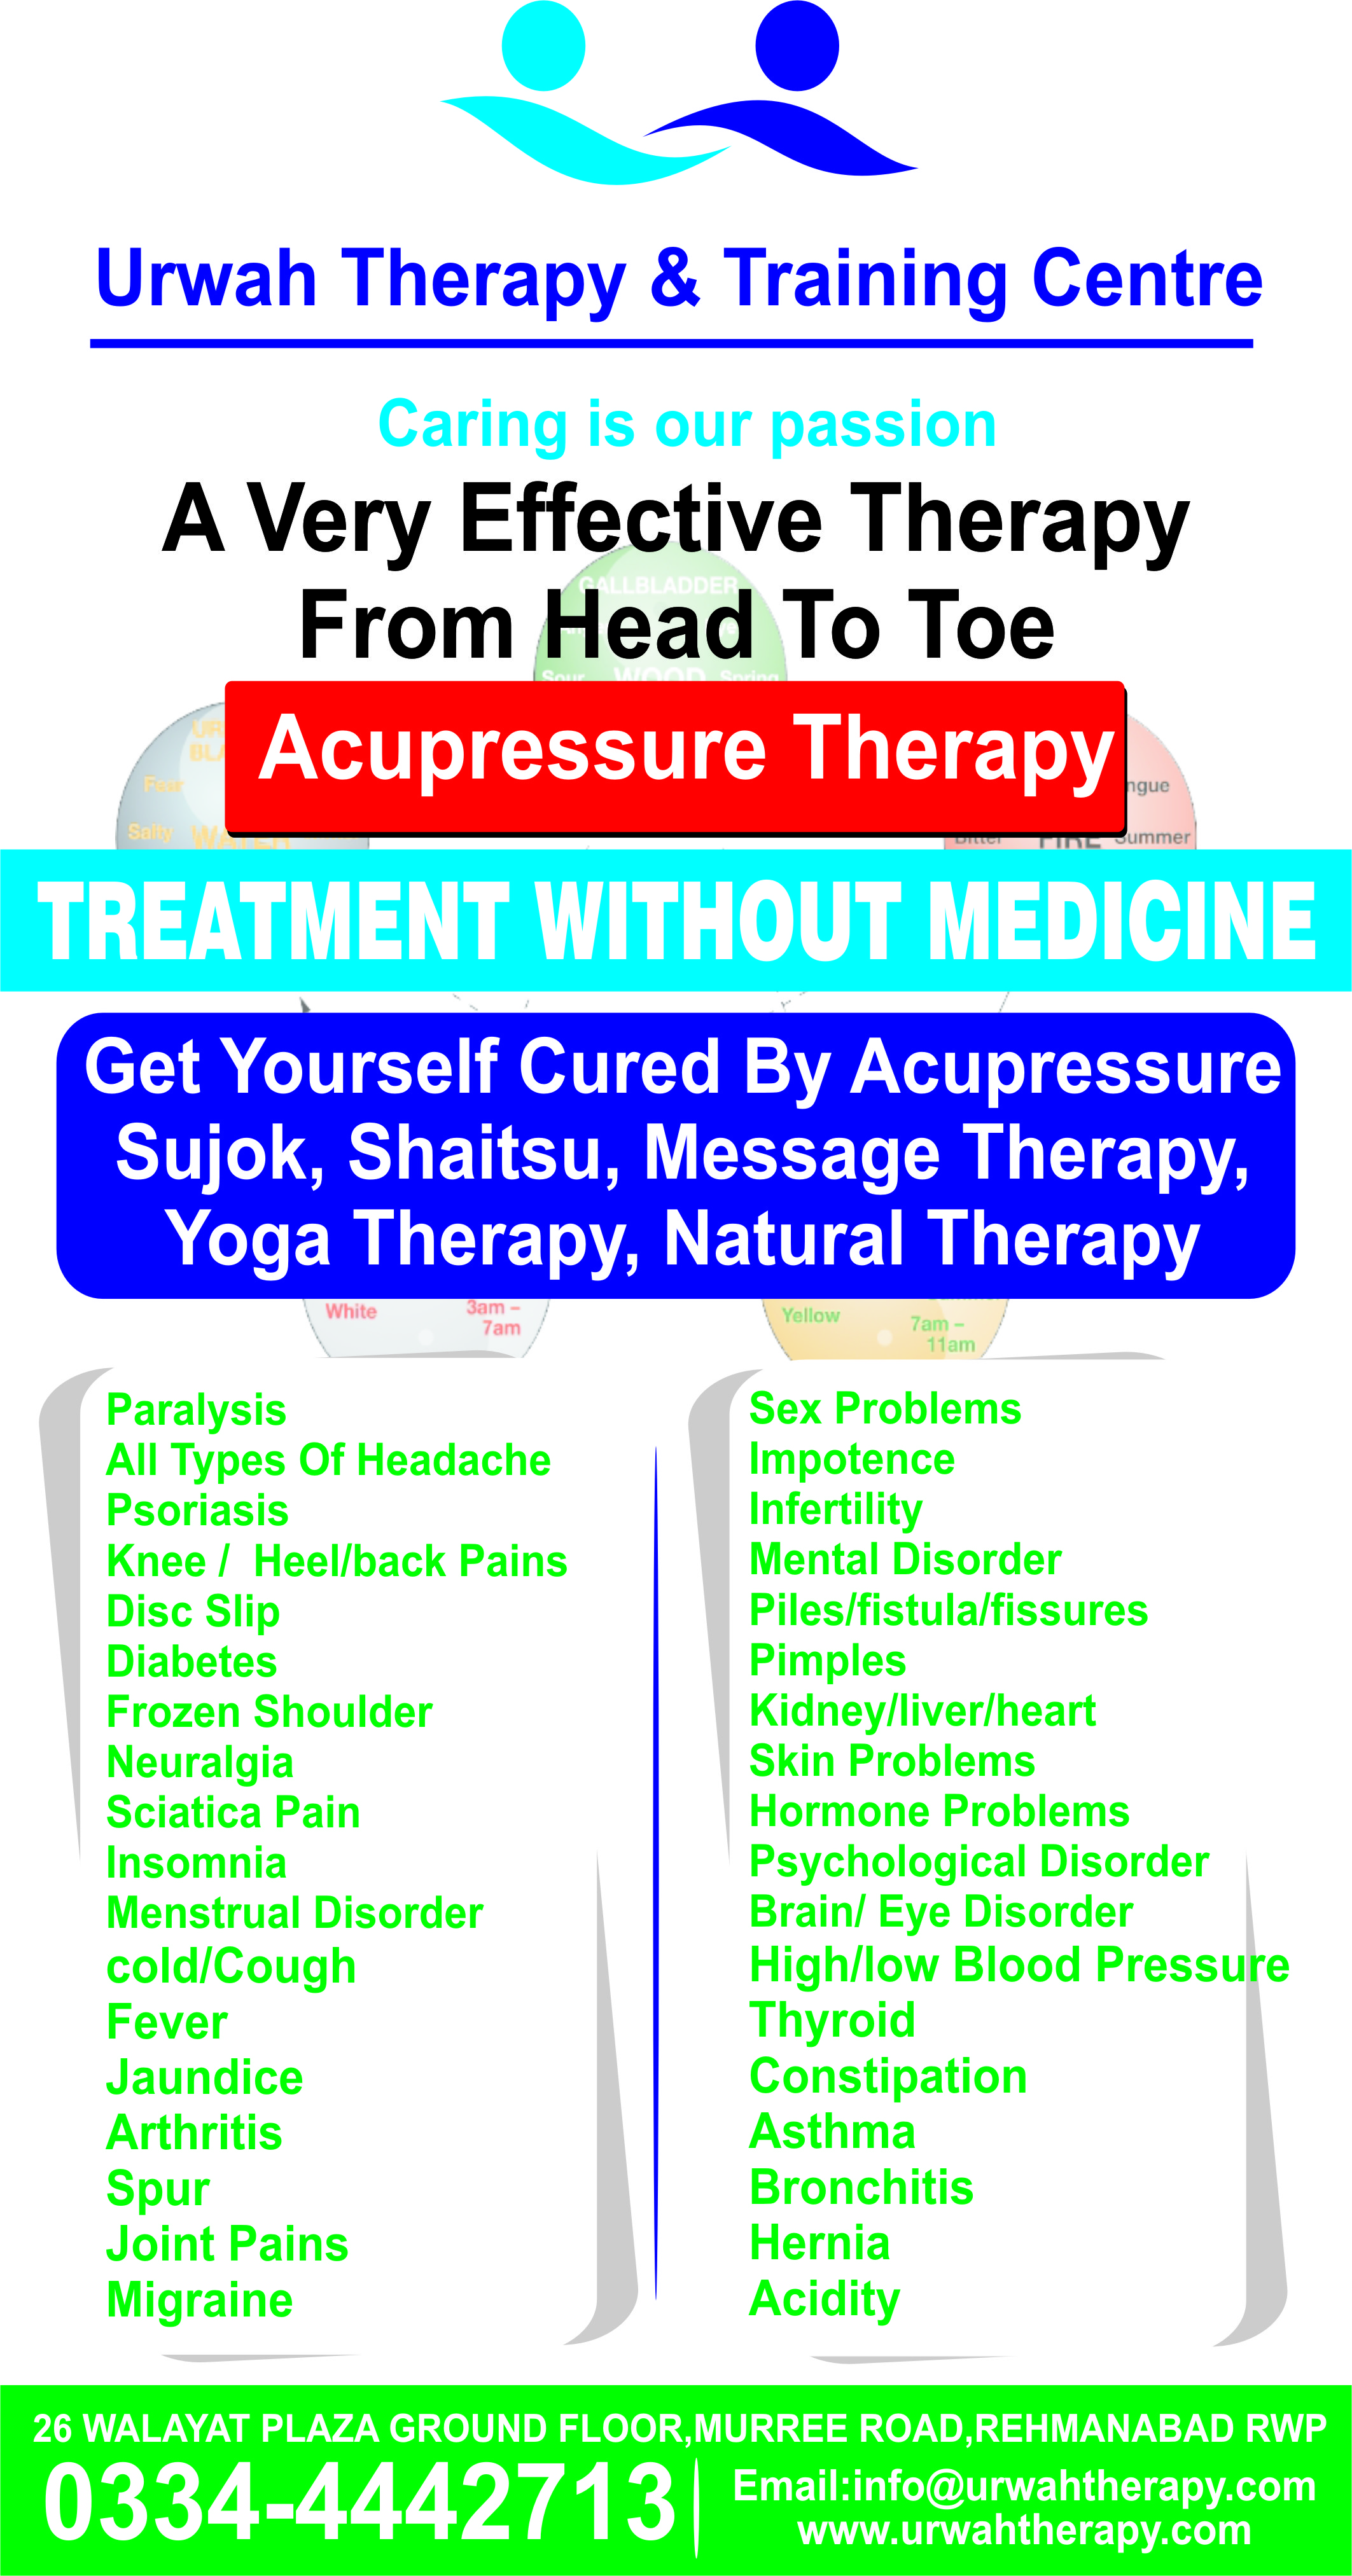 Colour therapy for high bp - Colour Therapy For Paralysis Variants Of Acupressure